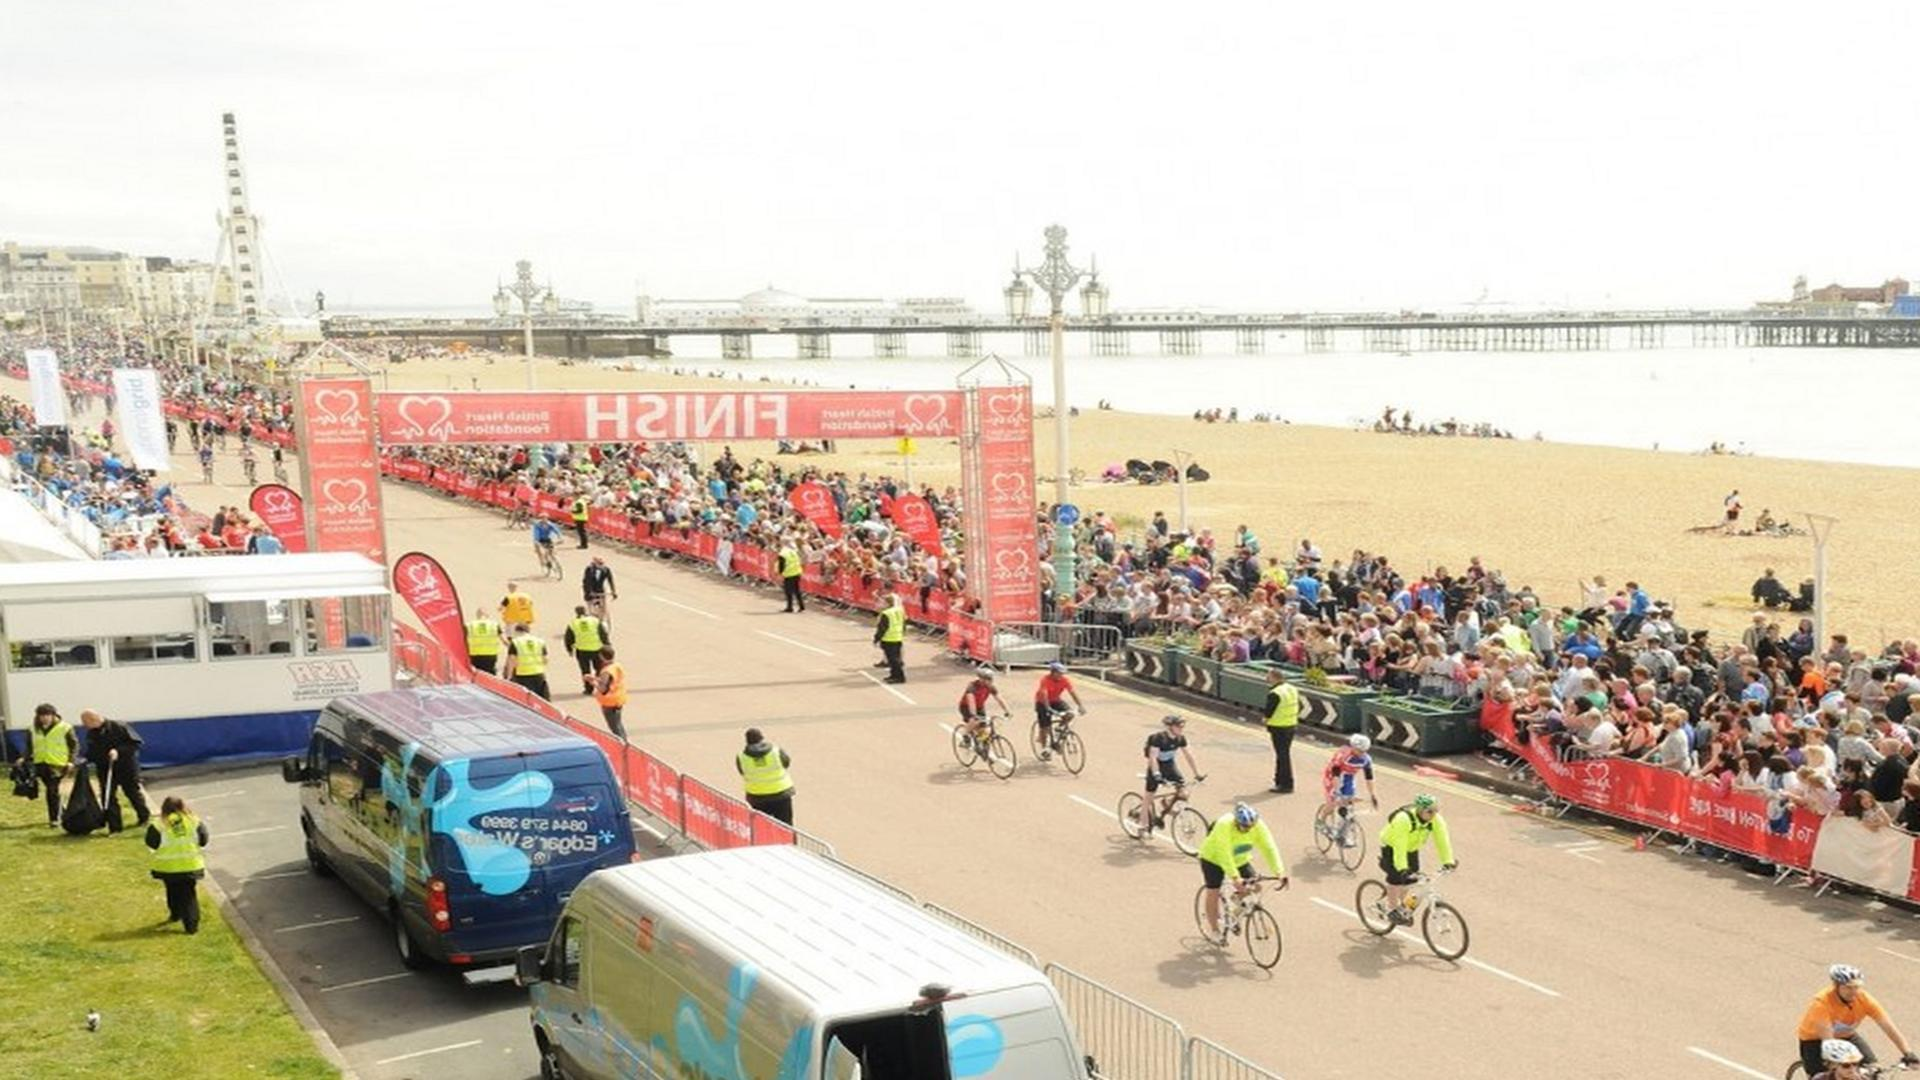 London To Brighton Bike Ride Tips